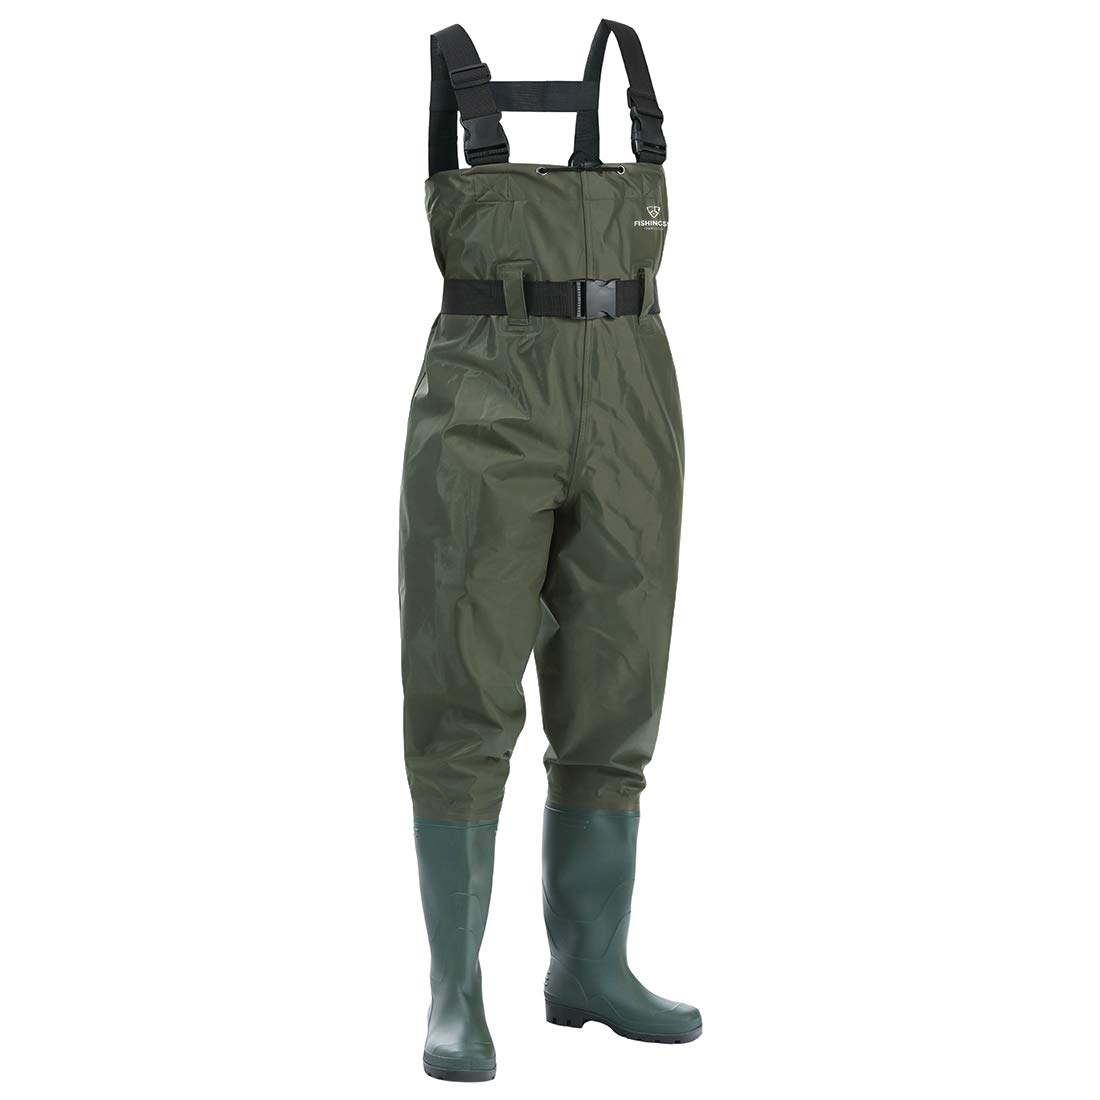 FISHINGSIR Chest Fishing Waders